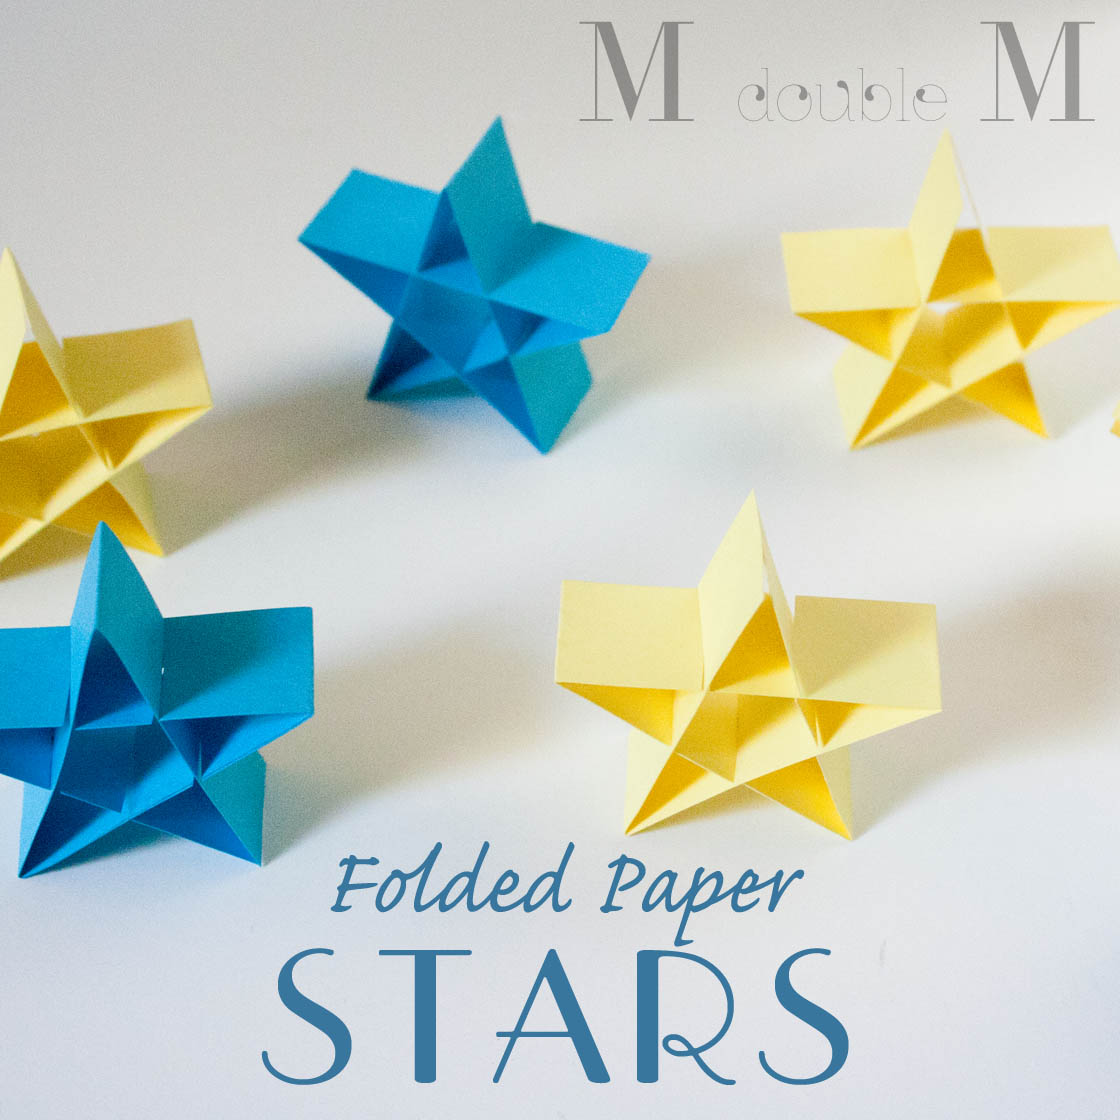 double M: Folded paper stars (DIY).